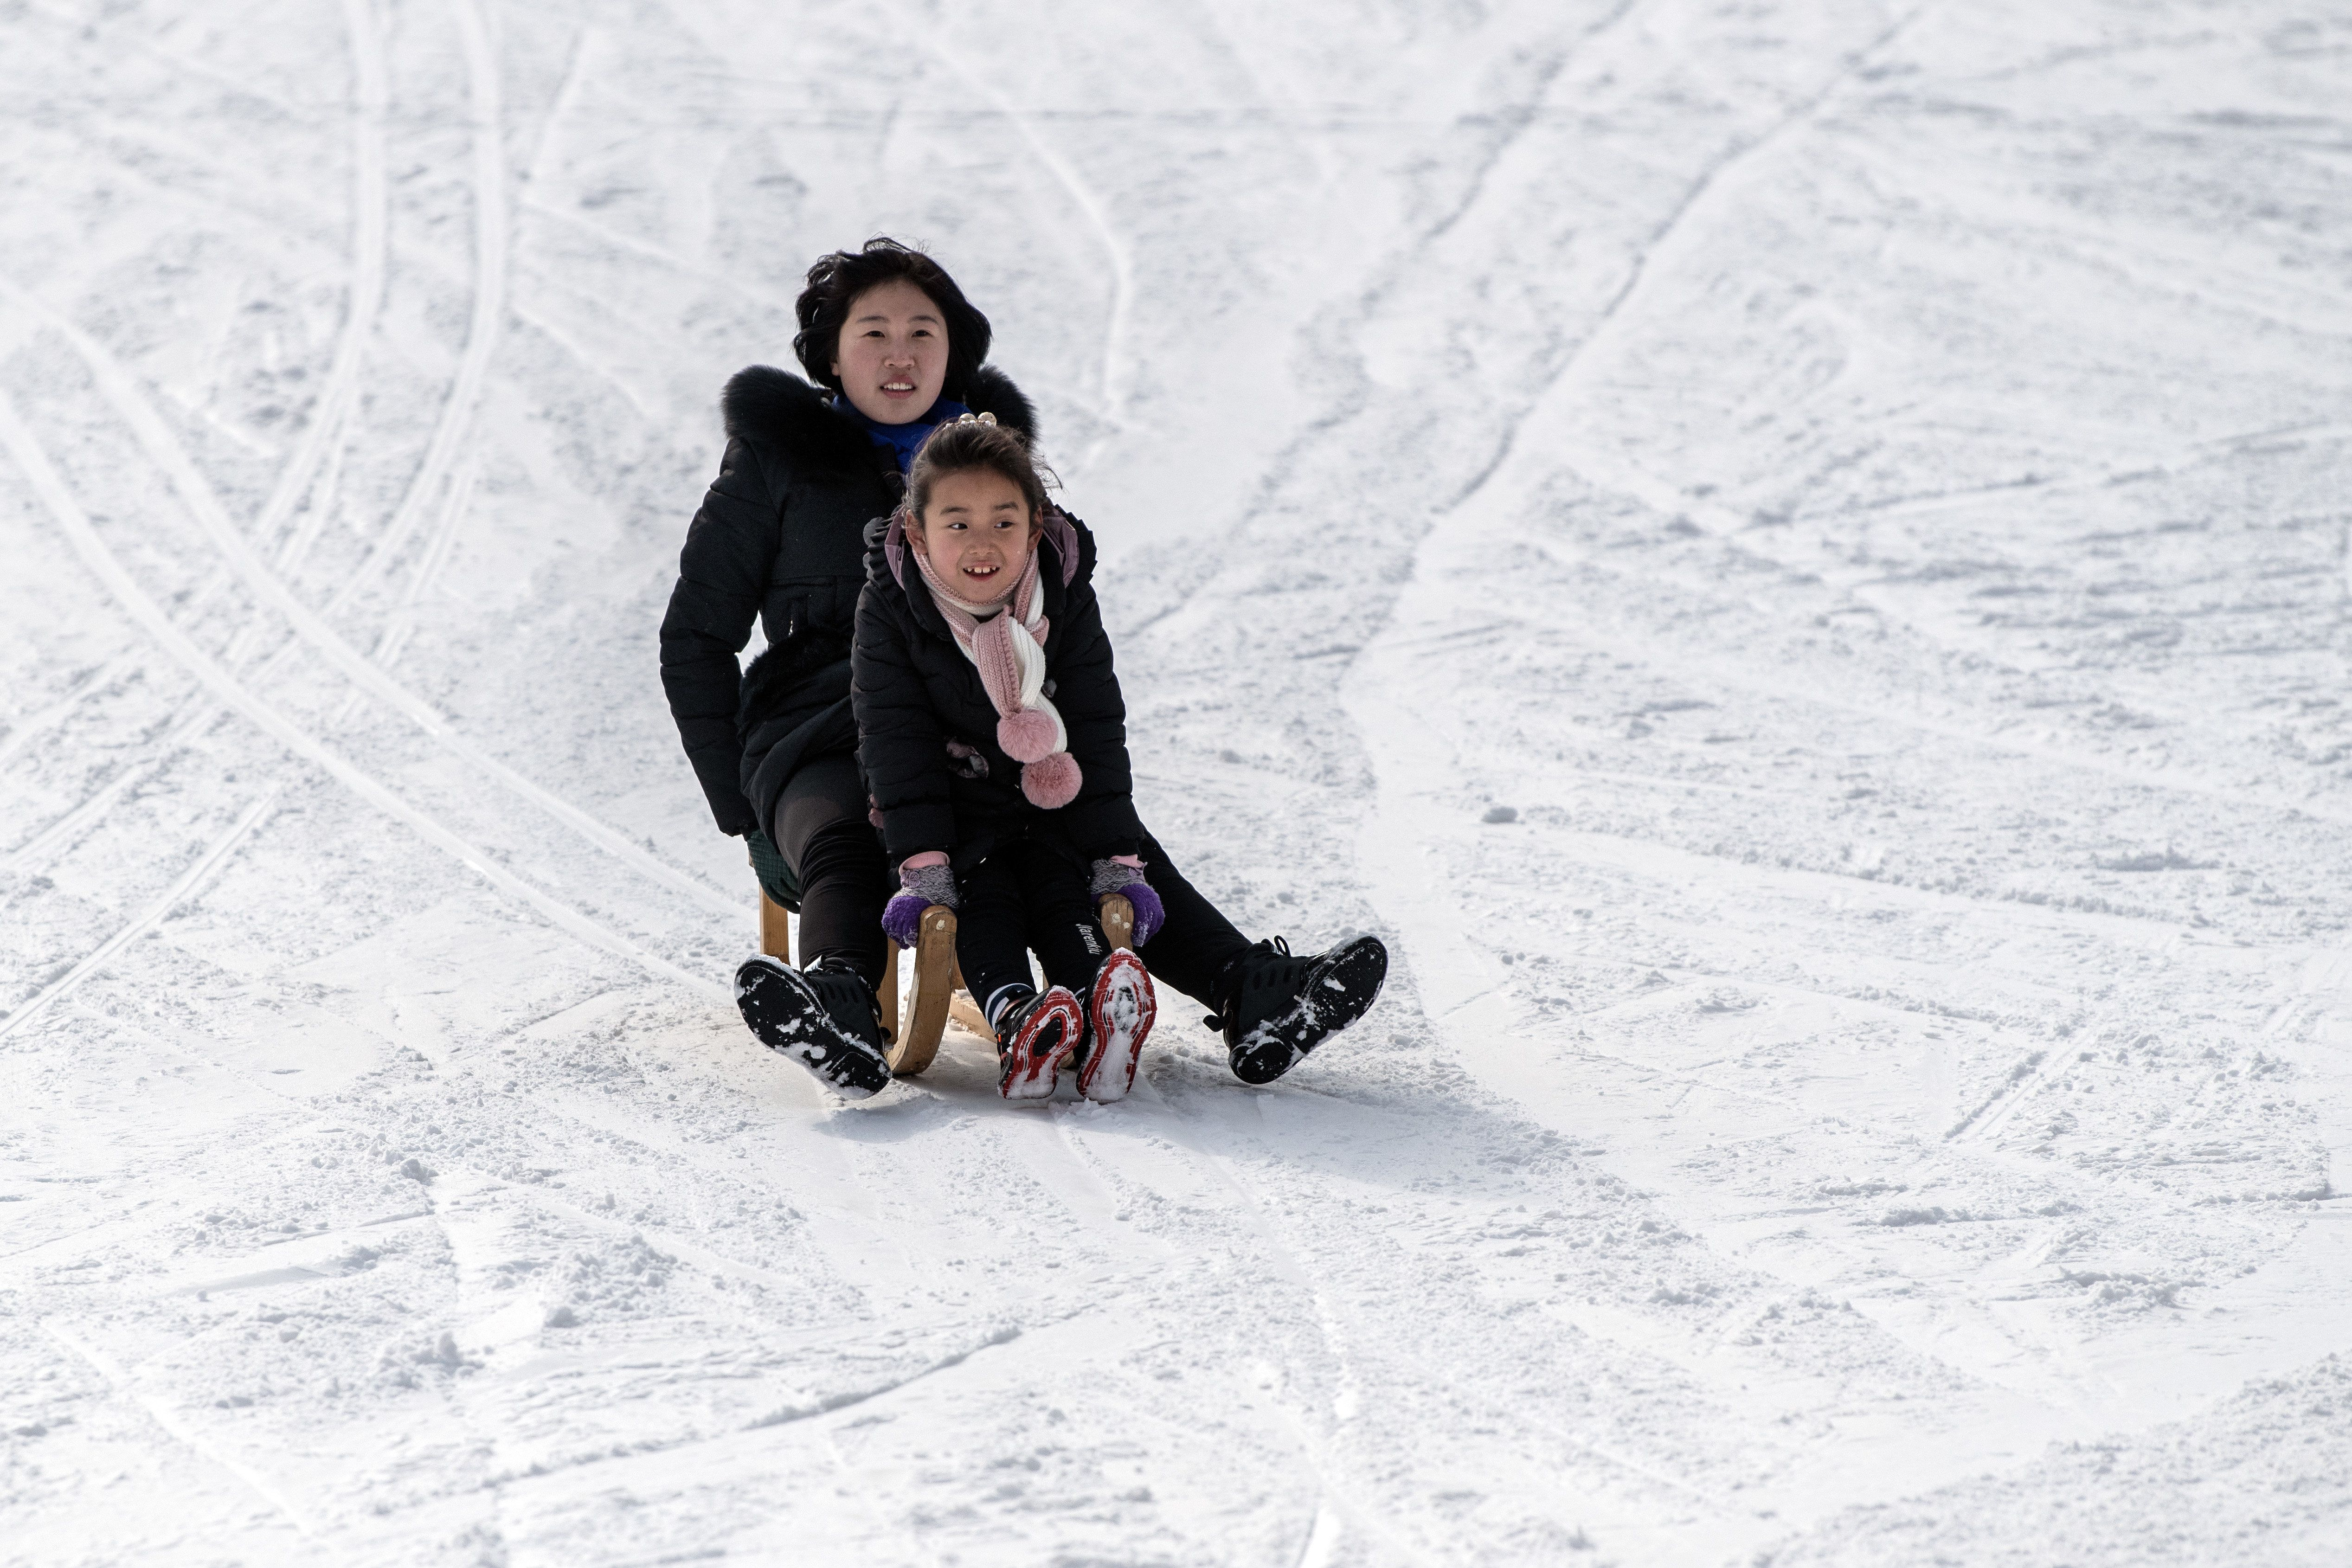 WONSAN, NORTH KOREA - FEBRUARY 05: A North Korean woman and child ride a sled on a lower slope at Masikryong Ski Resort on February 05, 2019 near Wonsan, North Korea. U.S President Donald Trump and North Korean Supreme Leader Kim Jong Un will hold a second summit in the Vietnamese capital of Hanoi later this month following a historic summit in Singapore last June. Although the two countries remain technically at war and with negotiations surrounding the details of North Korea's nuclear disarmament continuing, President Trump has hailed Kim Jong Un and North Korea with a tweet in which he predicted that the country would become 'a great economic powerhouse' thanks to Mr Kim's leadership. (Photo by Carl Court/Getty Images)